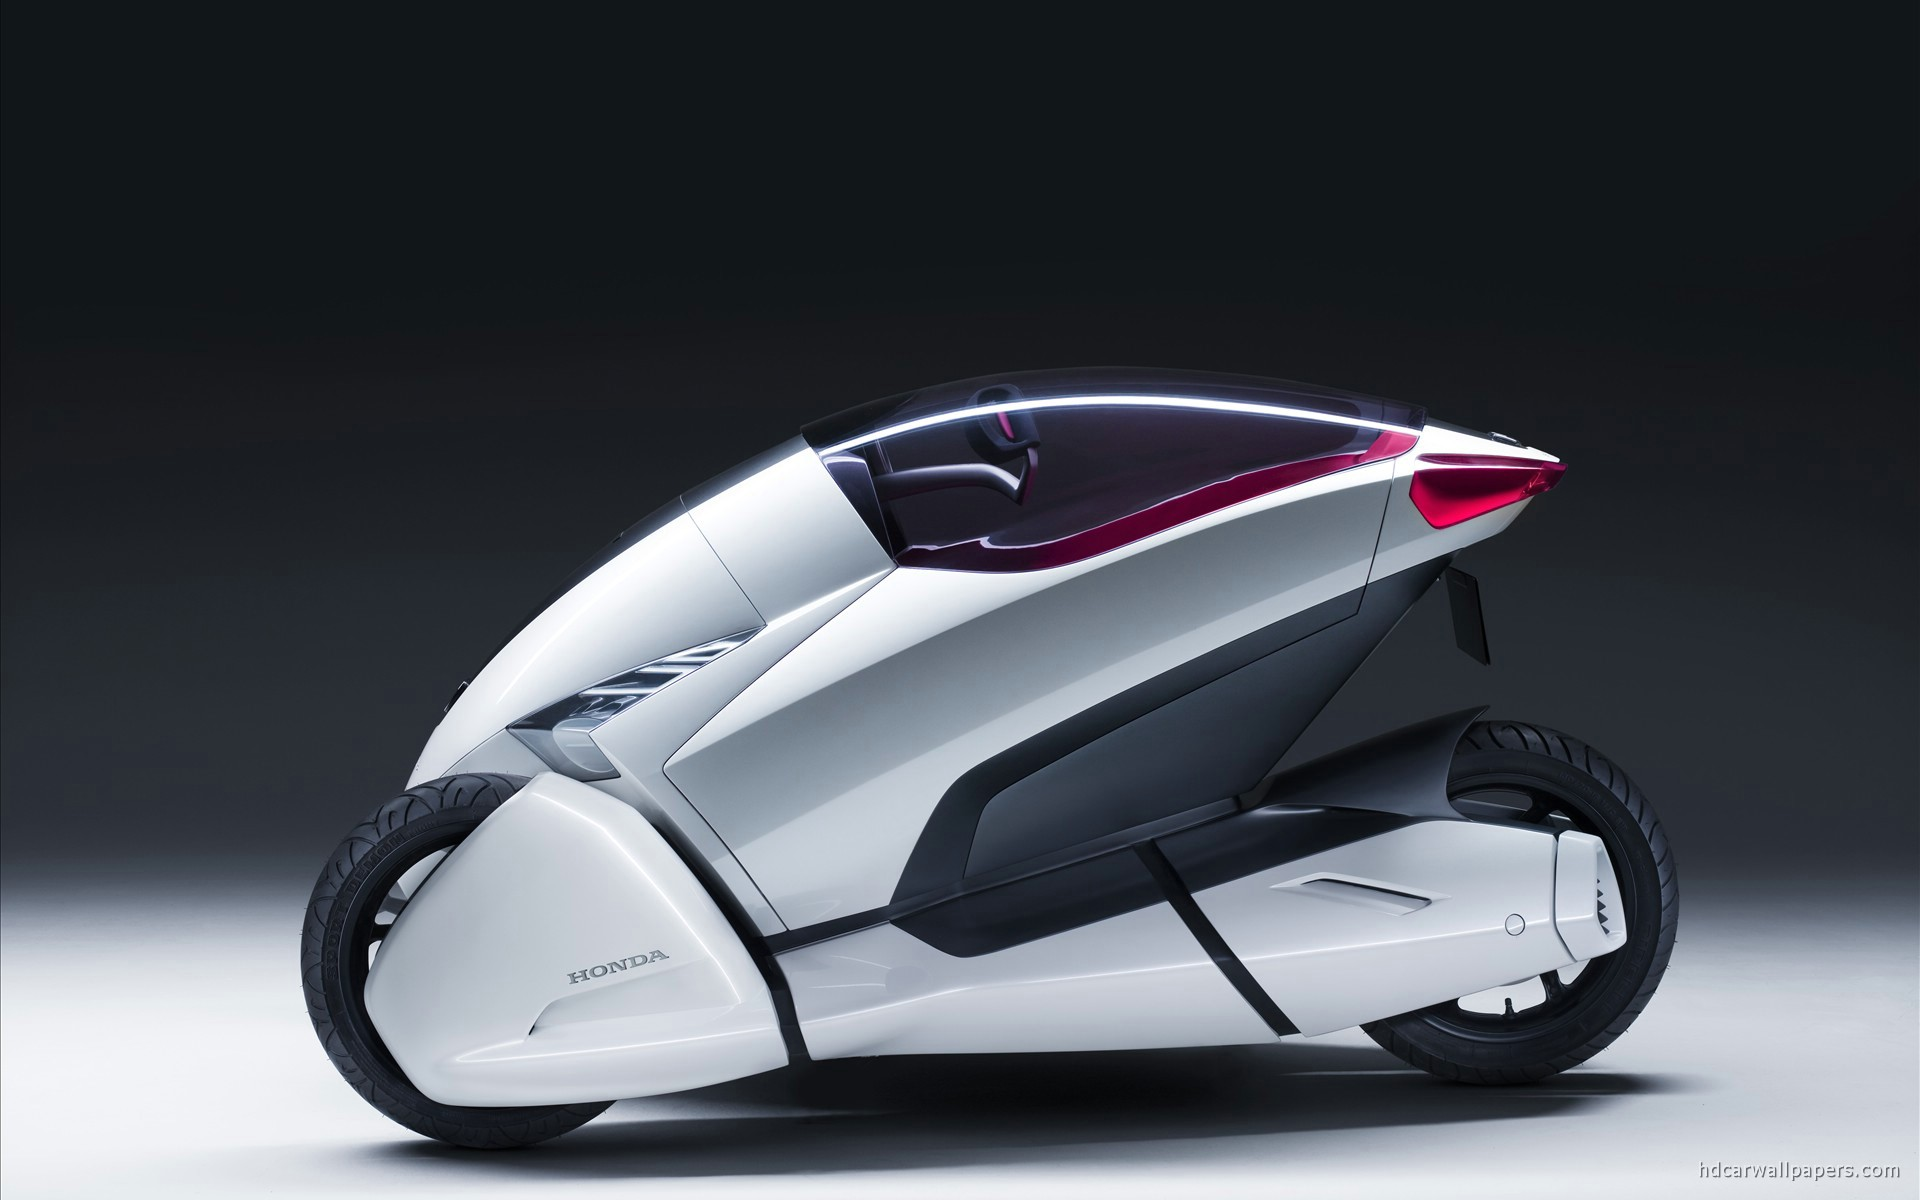 2010 Honda 3r C Concept Wallpaper Hd Car Wallpapers Id